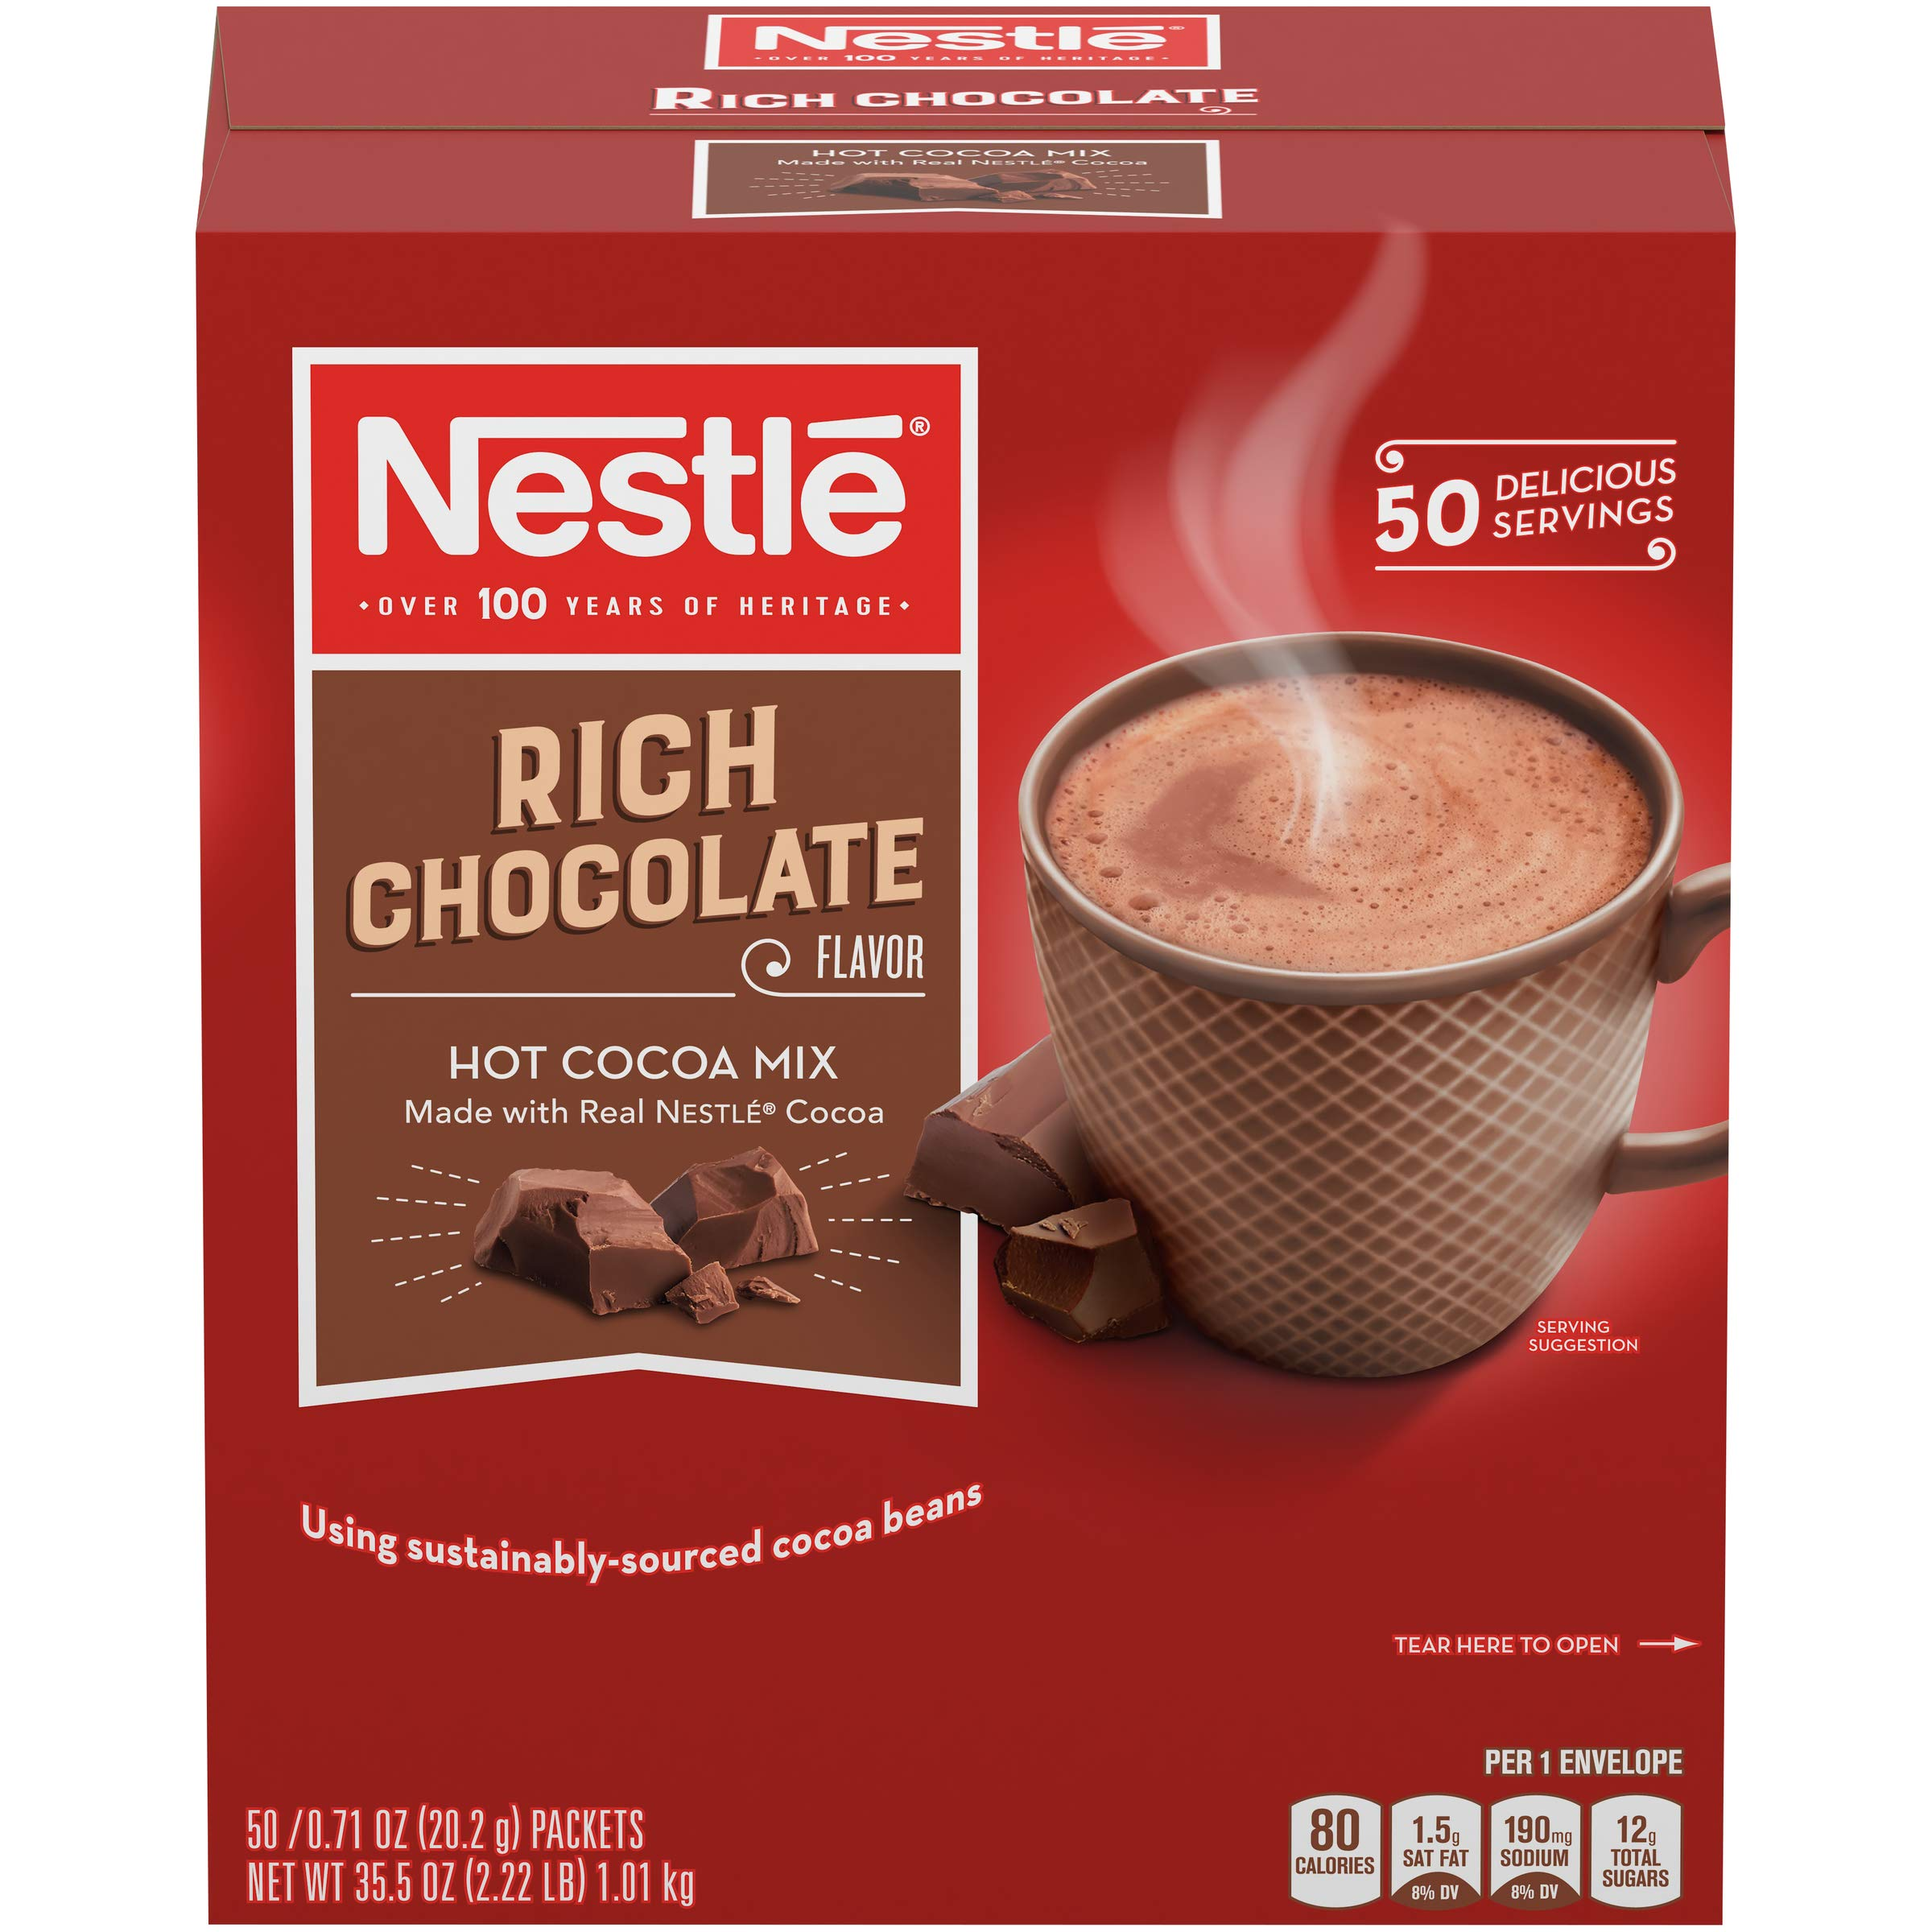 Nestle Hot Chocolate Mix, Hot Cocoa, Rich Chocolate Flavor, Made with Real Cocoa, 0.71 oz Packets (Pack of 50) by Nestle Hot Cocoa